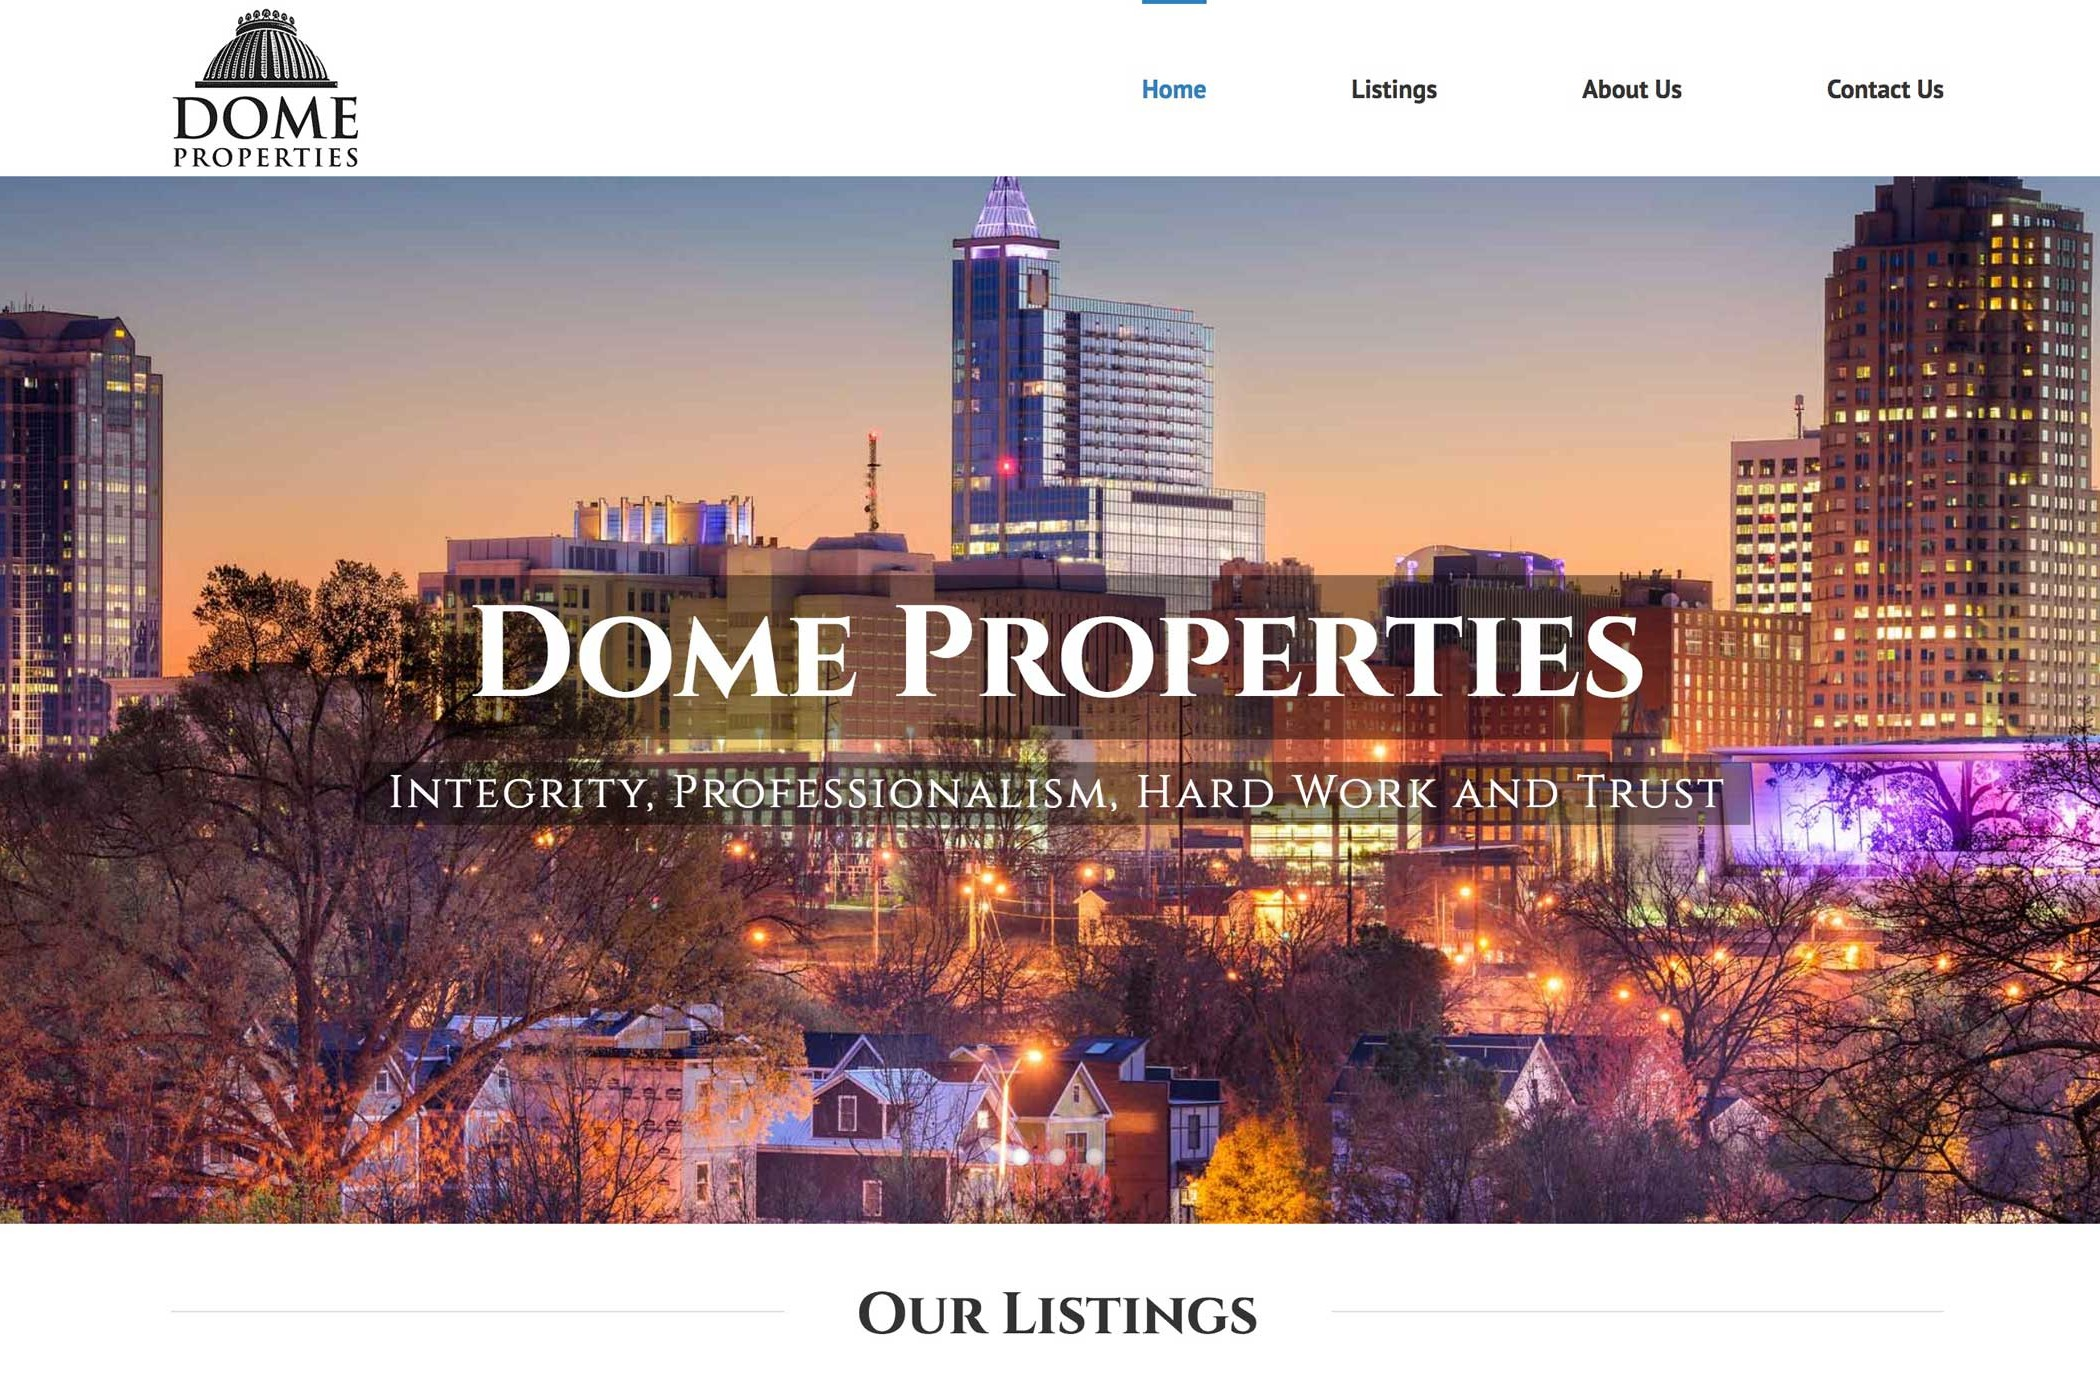 Dome Properties